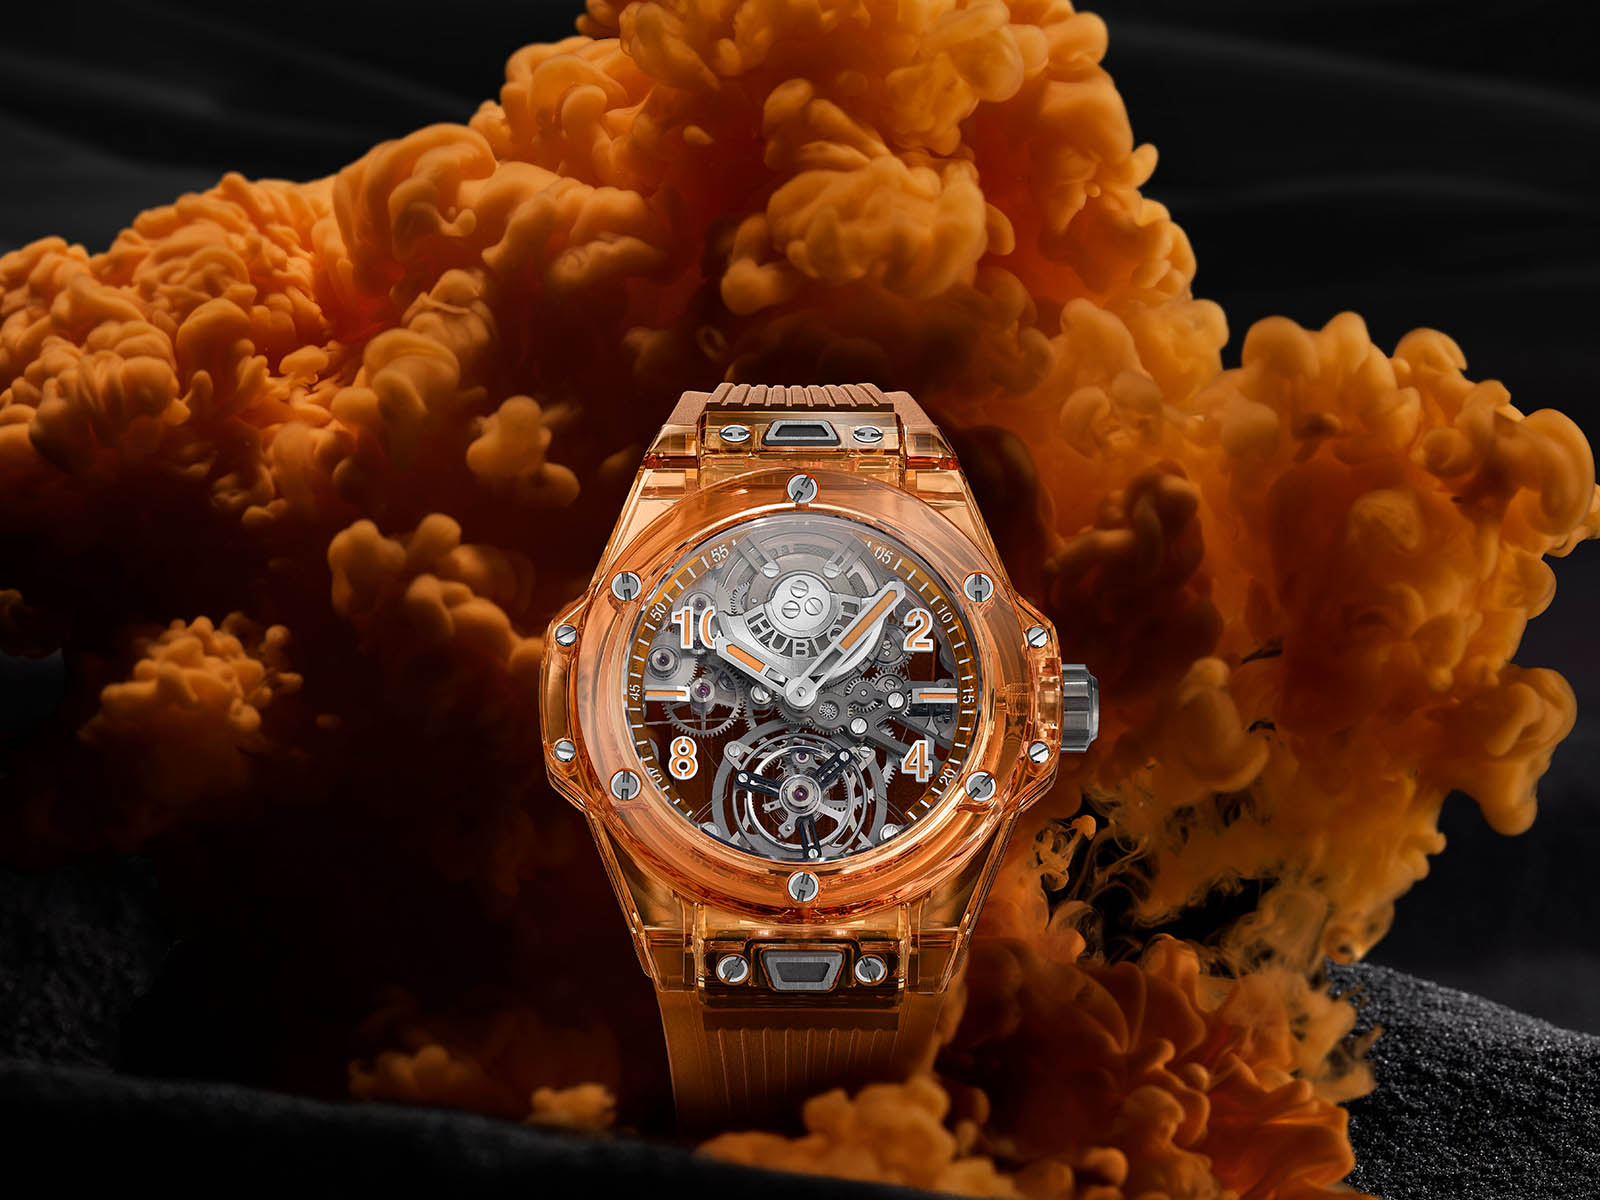 hublot-big-bang-tourbillon-orange-sapphire-lvmh-2021-novelties-1.jpg